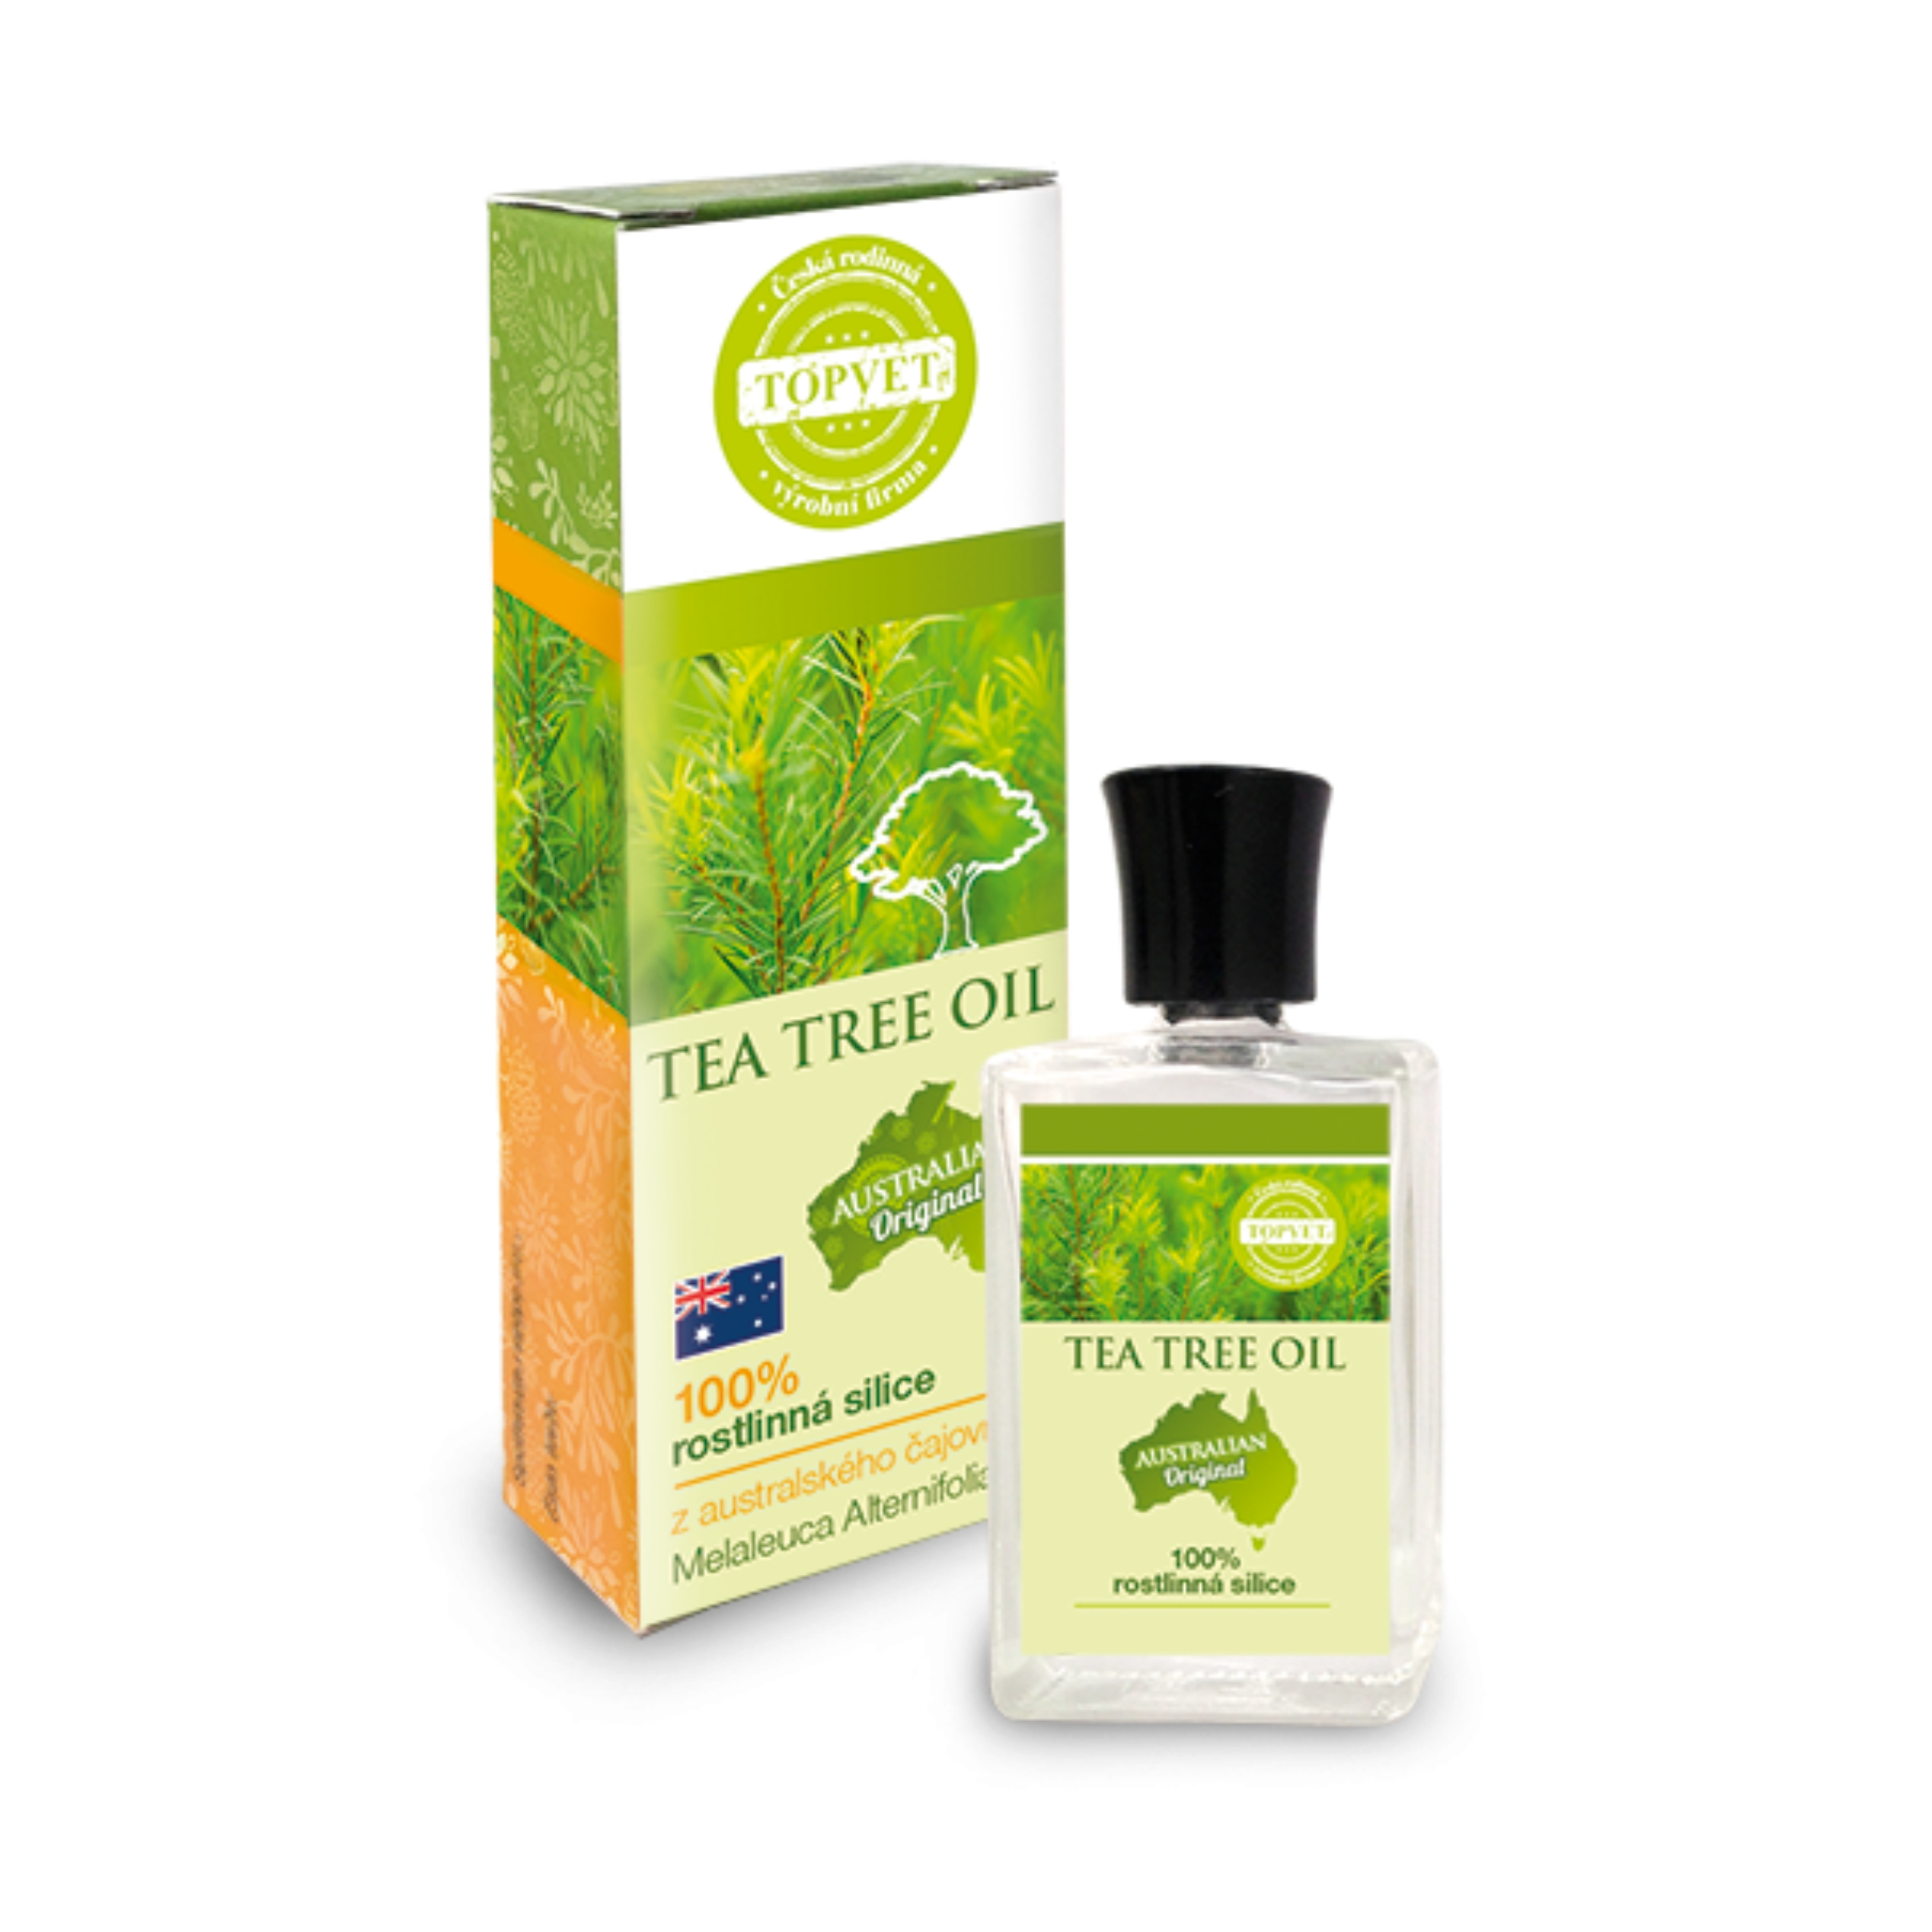 TOPVET Tea tree oil - rostlinná silice 10 ml 10 ml